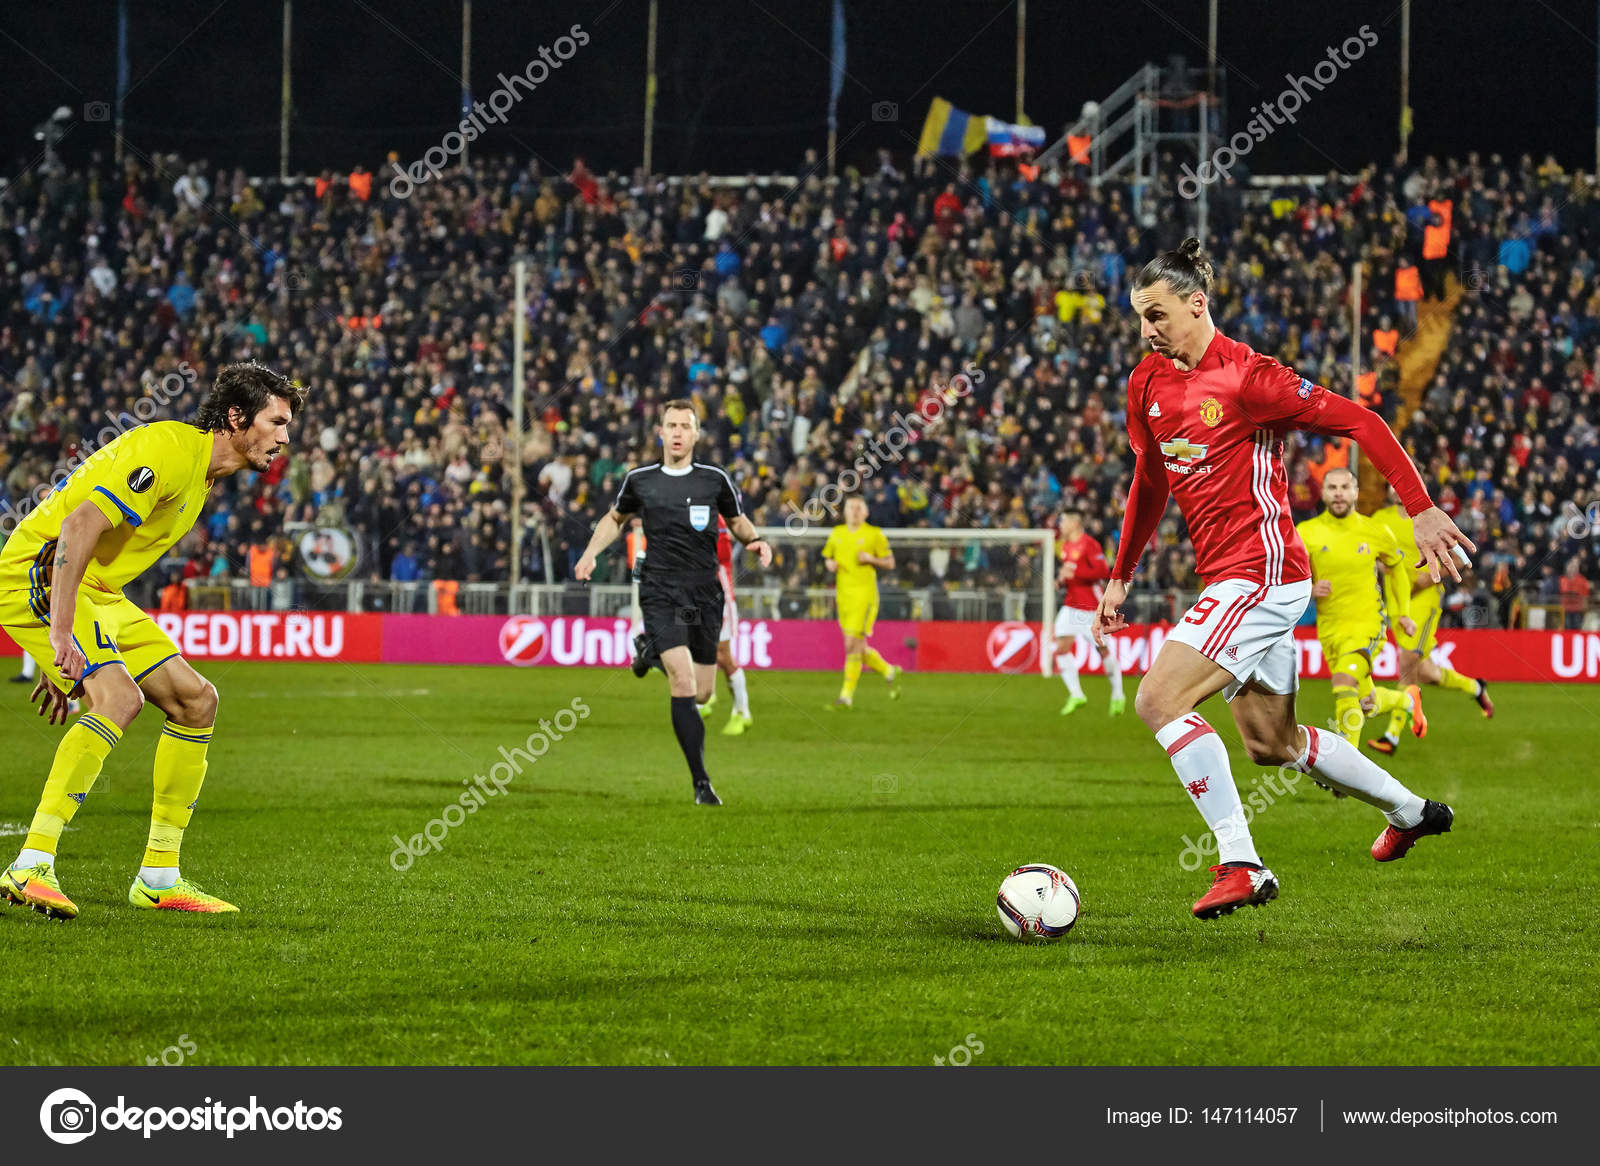 81c67206b Zlatan Ibrahimovic (Feyenoord) Game moments in match 1 8 finals of the  Europa League between FC